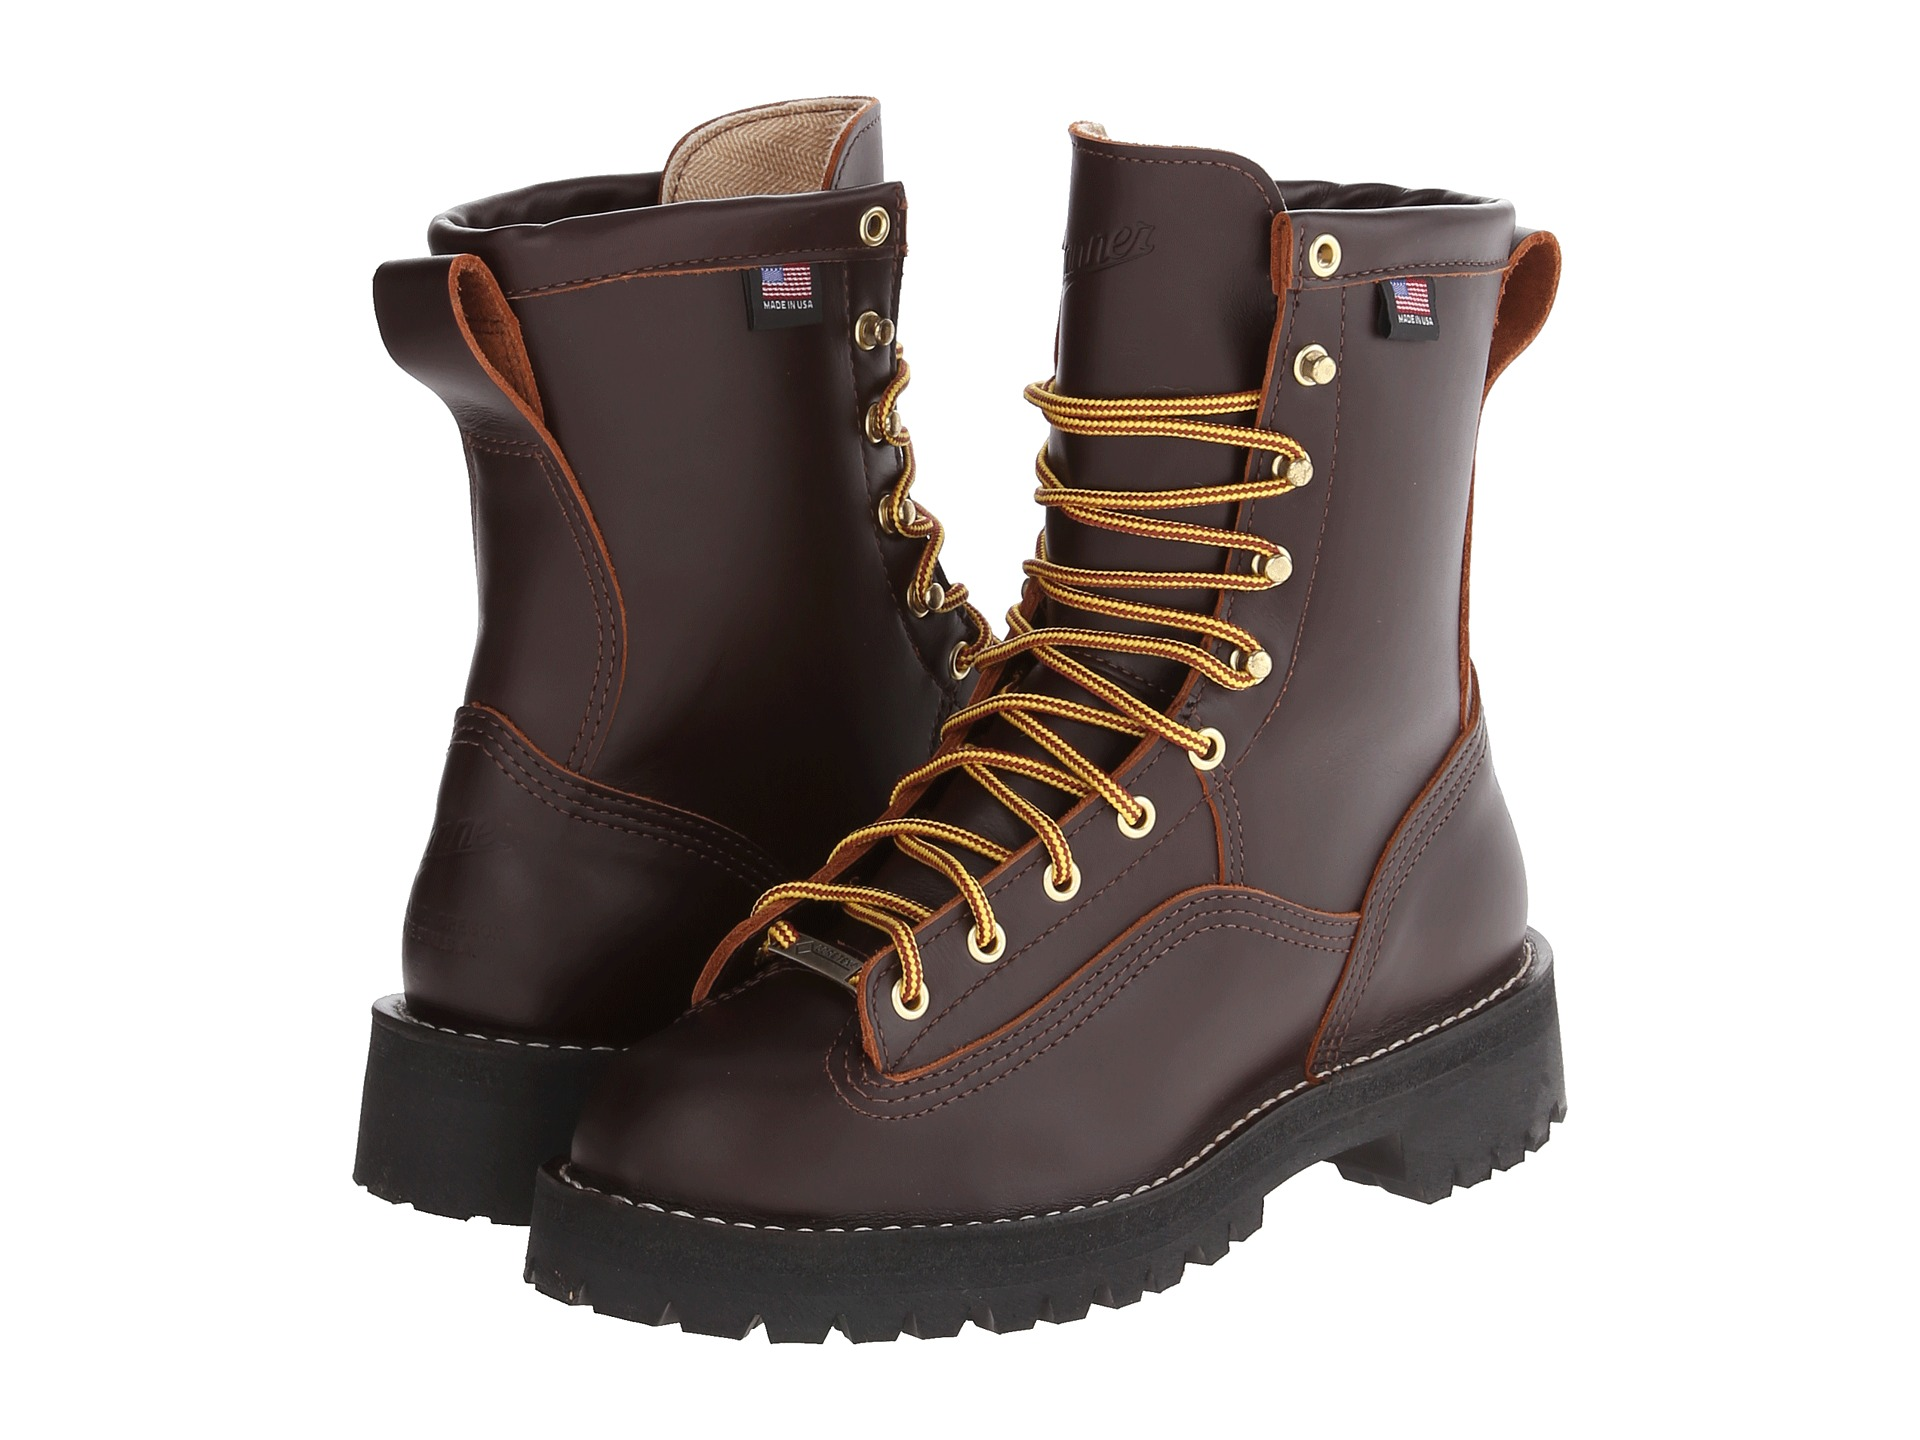 Danner Rain Forest 8 | Shipped Free at Zappos